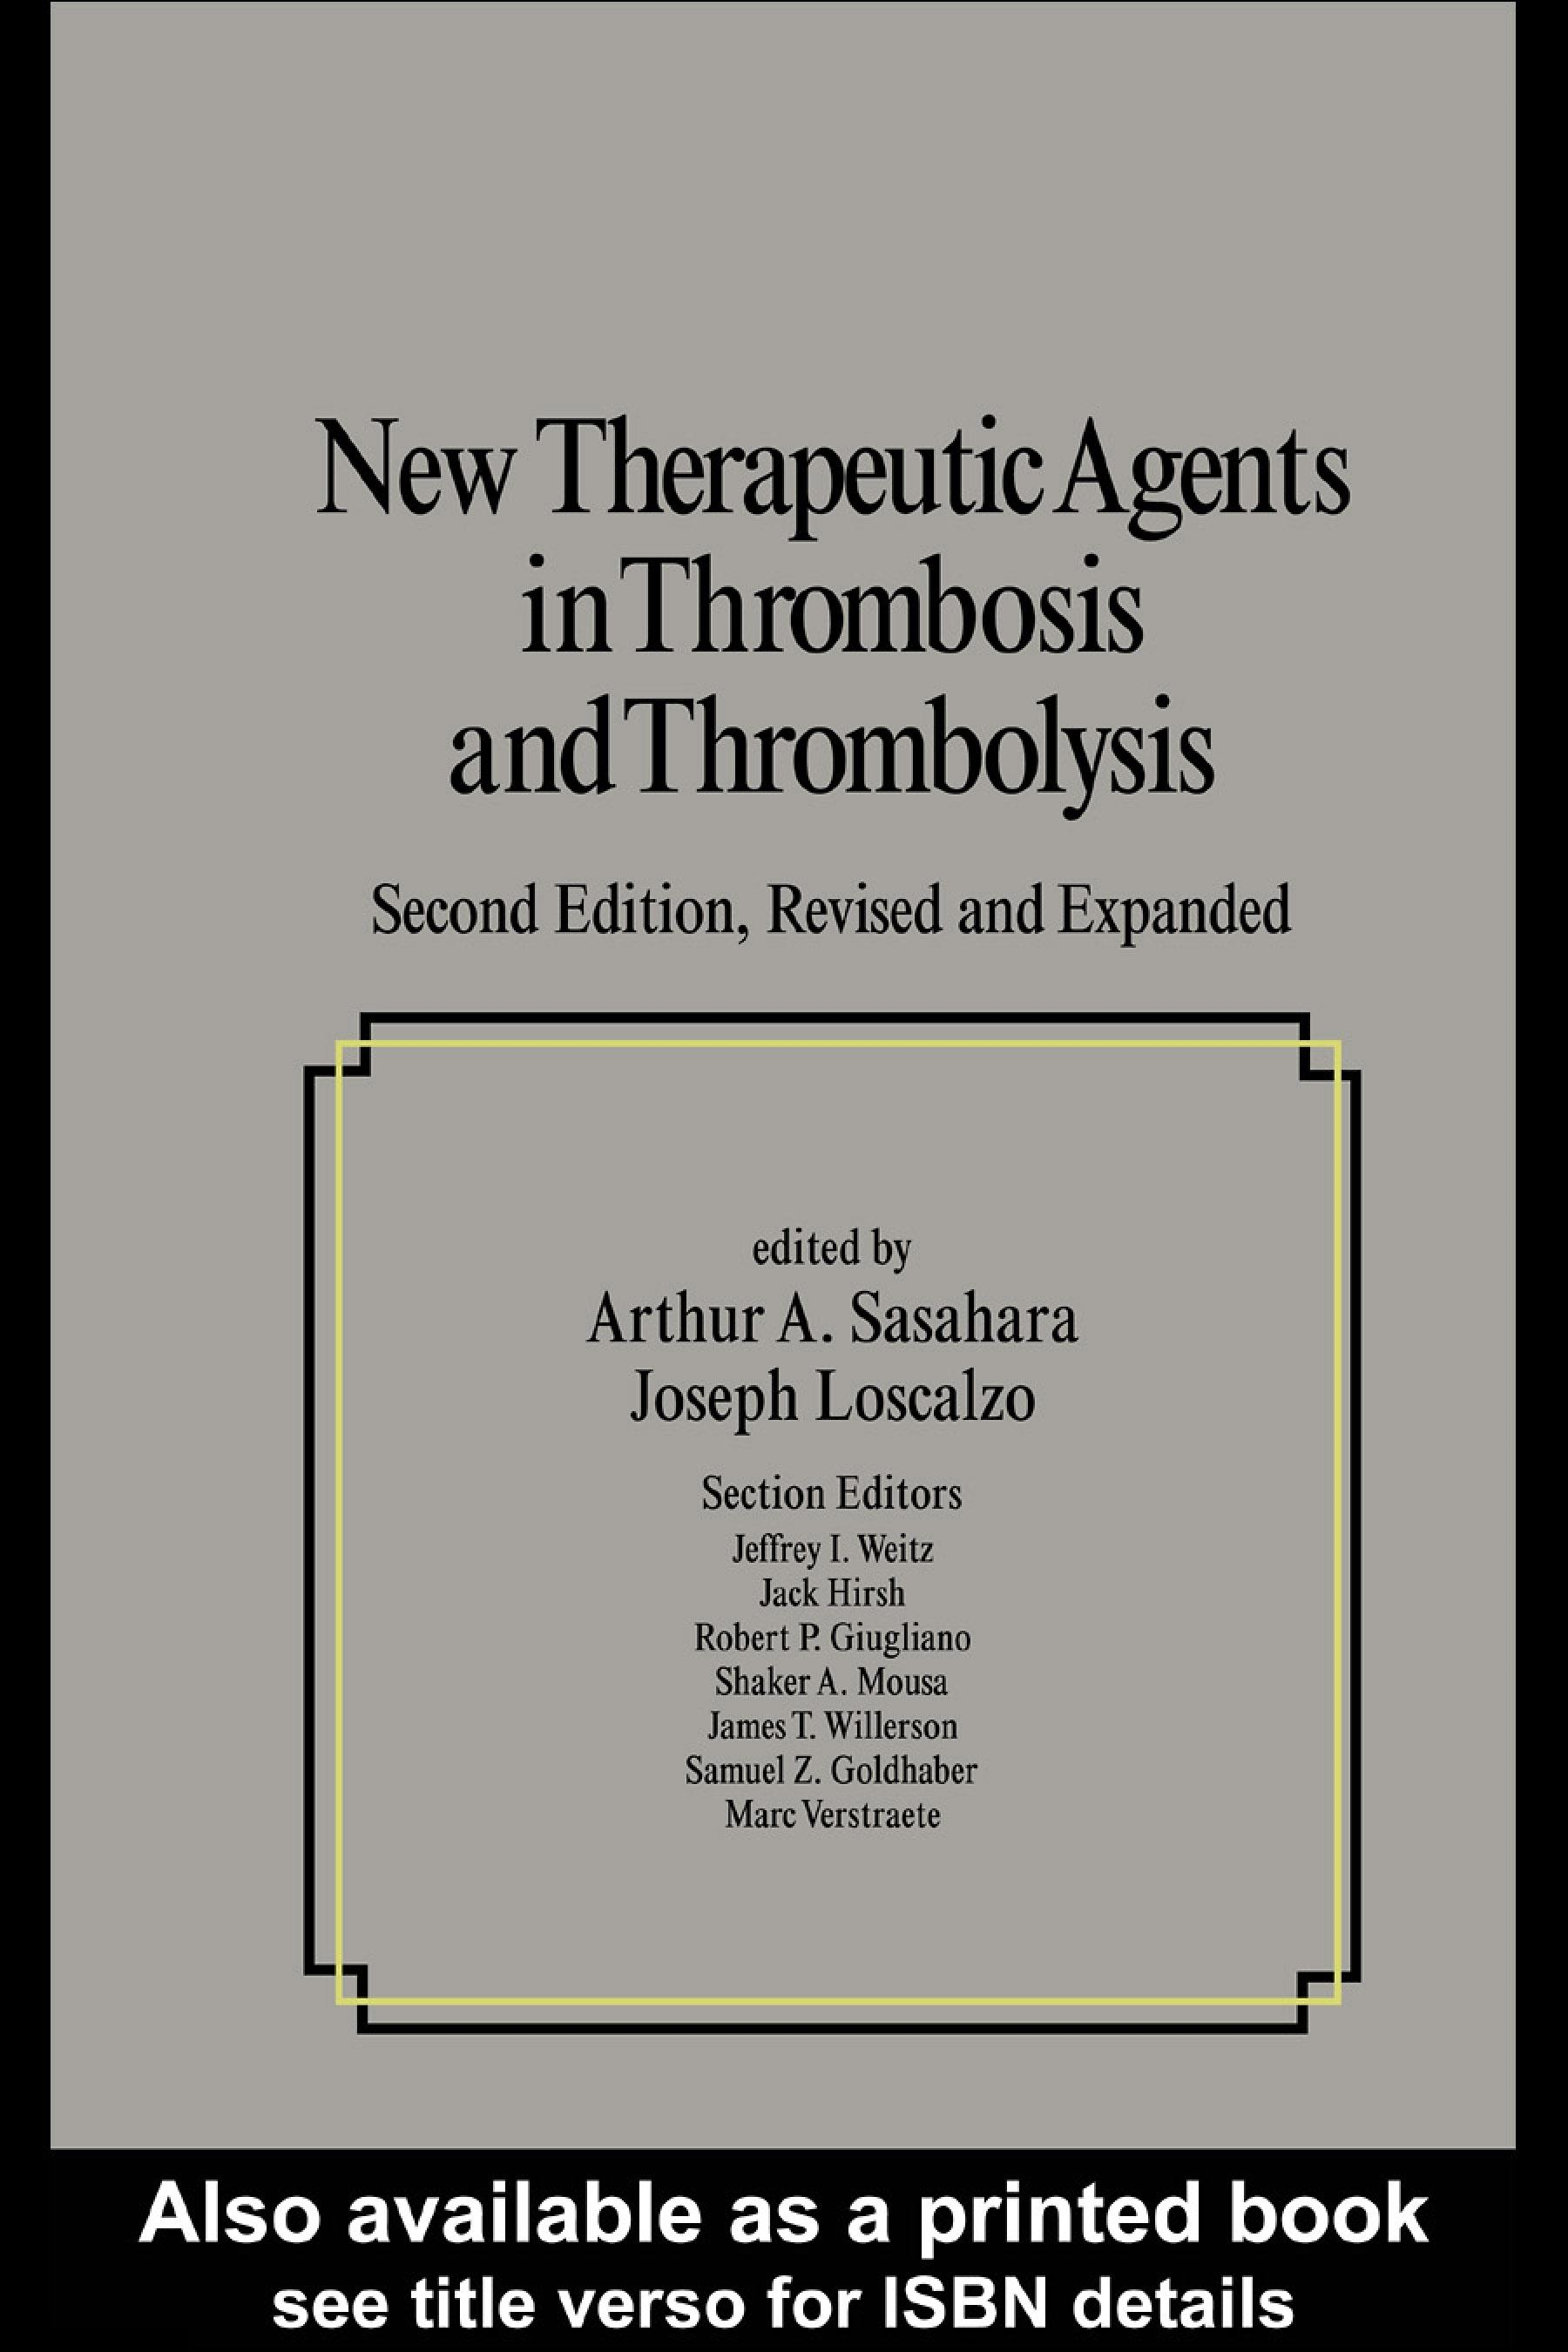 Joseph Loscalzo - New Therapeutic Agents In Thrombosis And Thrombolysis Second Edition, Revised And Expanded